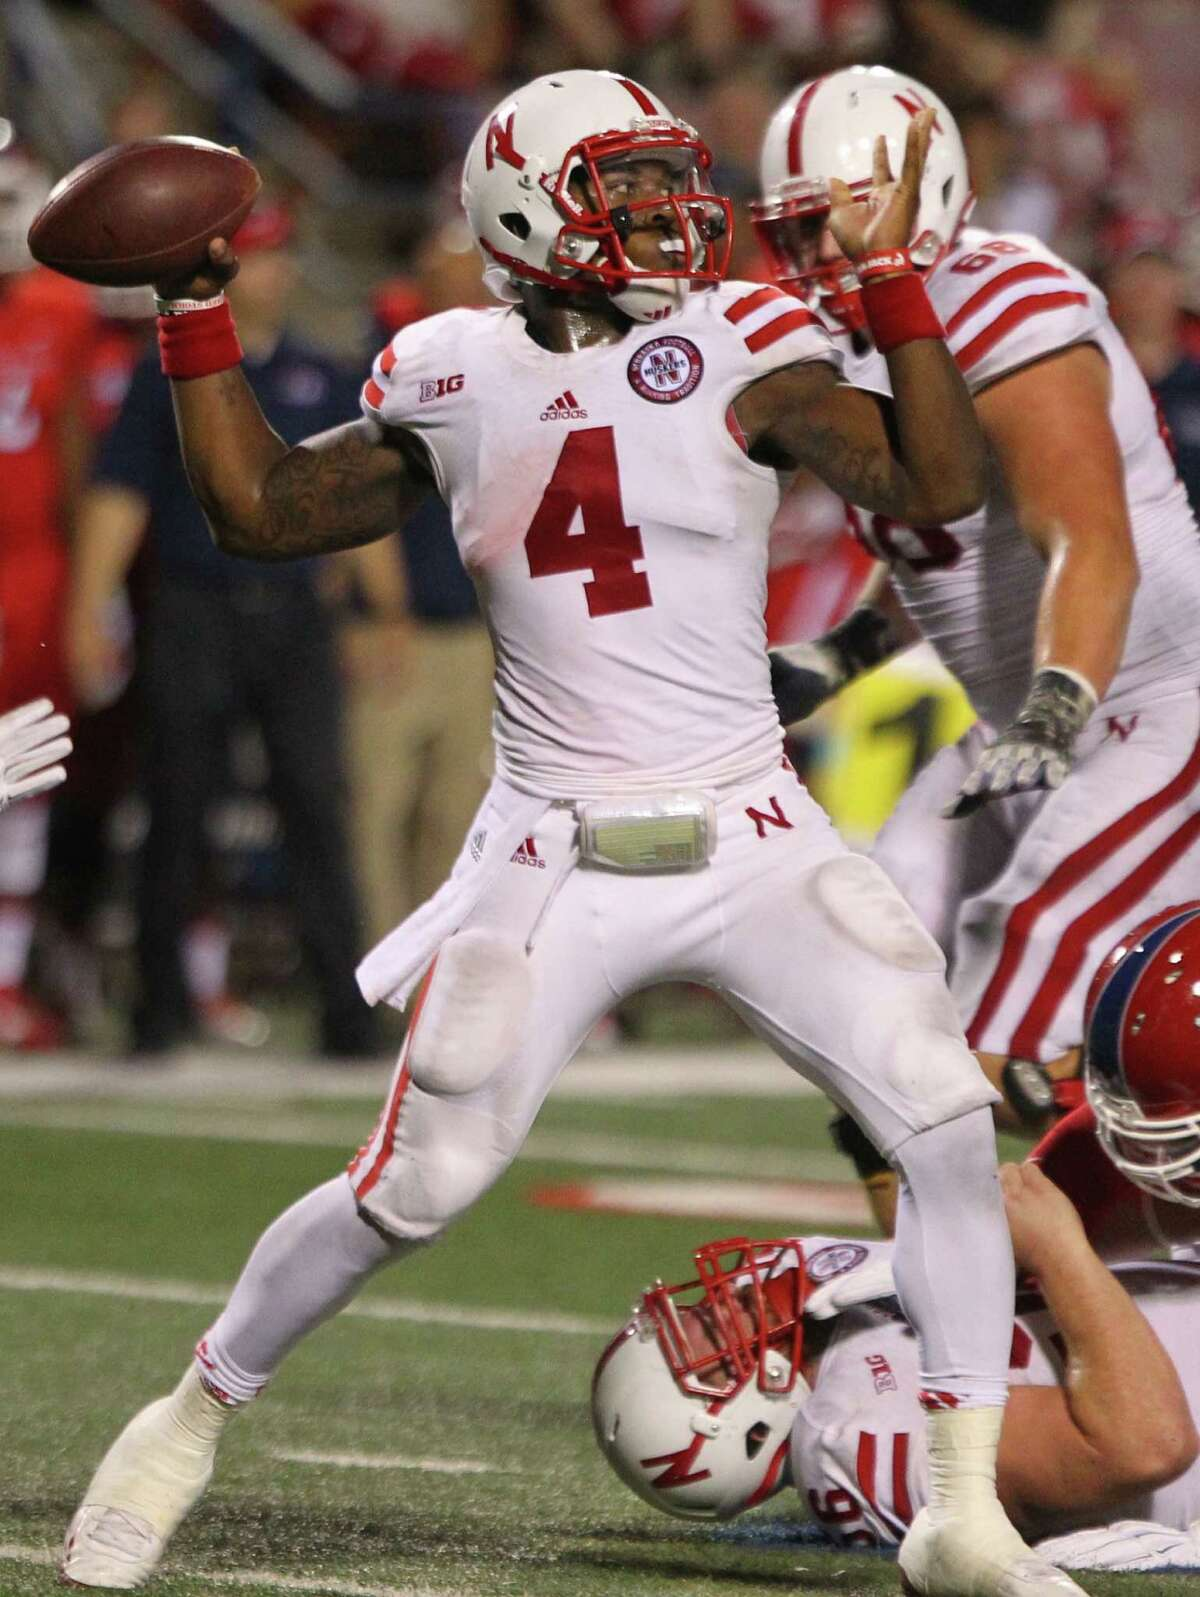 Tommy Armstrong Jr. went to Steele High School and plays quarterback for Nebraska.